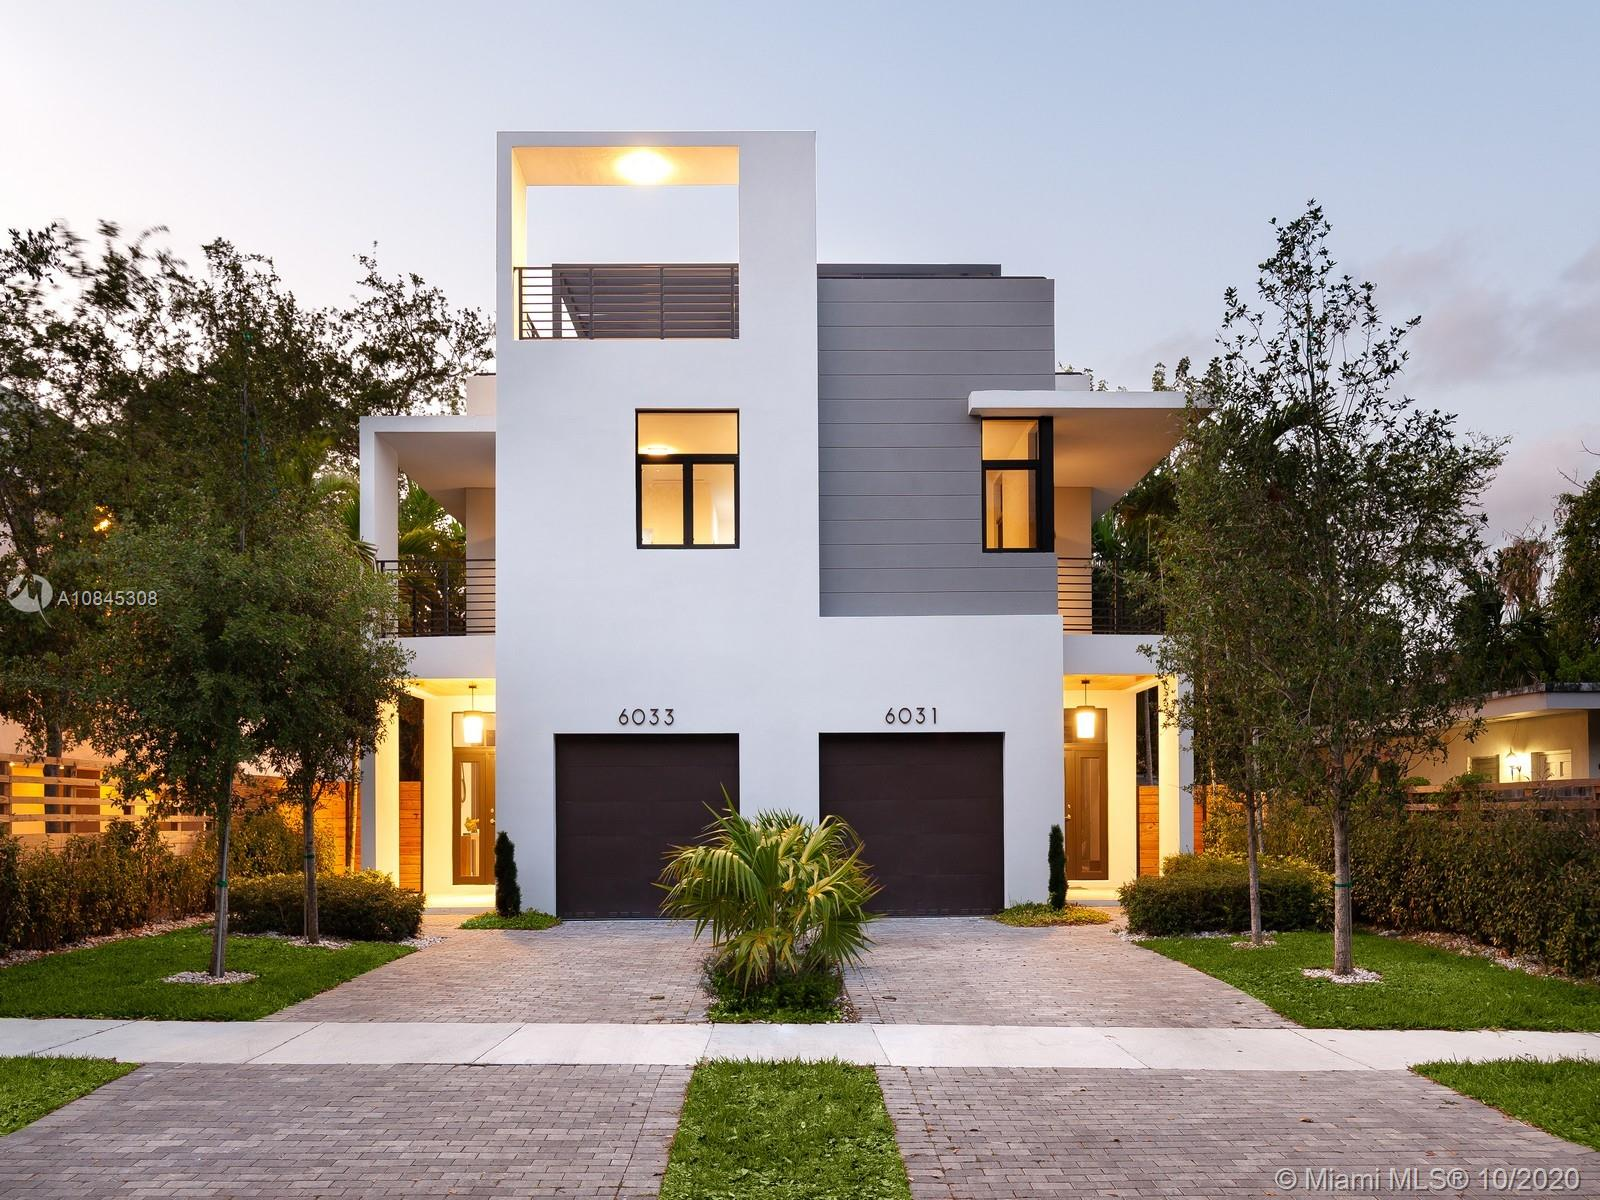 Brand New Luxury Townhome in the heart of S Miami. Find modern design w/luxury finishes in this newly constructed & first of its kind property in SOMI w/no association fees. A 2-story Townhome w/remarkable roof top terr, feat. 4 Bd & 4/1 & a pool. Residents can find an open concept flr plan that maximizes large living spaces, elegant designer finishes throughout: en-suite bathrms, porcelain flrs, gourmet chef's kit w/ waterfall island quartz countertop & stainless-steel built-in appl. Fully equip w/Smart home integration, efficient a/c & heating, camera's & security system, w/speakers incl. Impressive outdr living areas w/covered patio & balcony, plunge pool, & roof top terr w/outdr kit hook up. Extensively built w/entertainment in mind. Near S Miami downtwn, restaurants, shops & dining